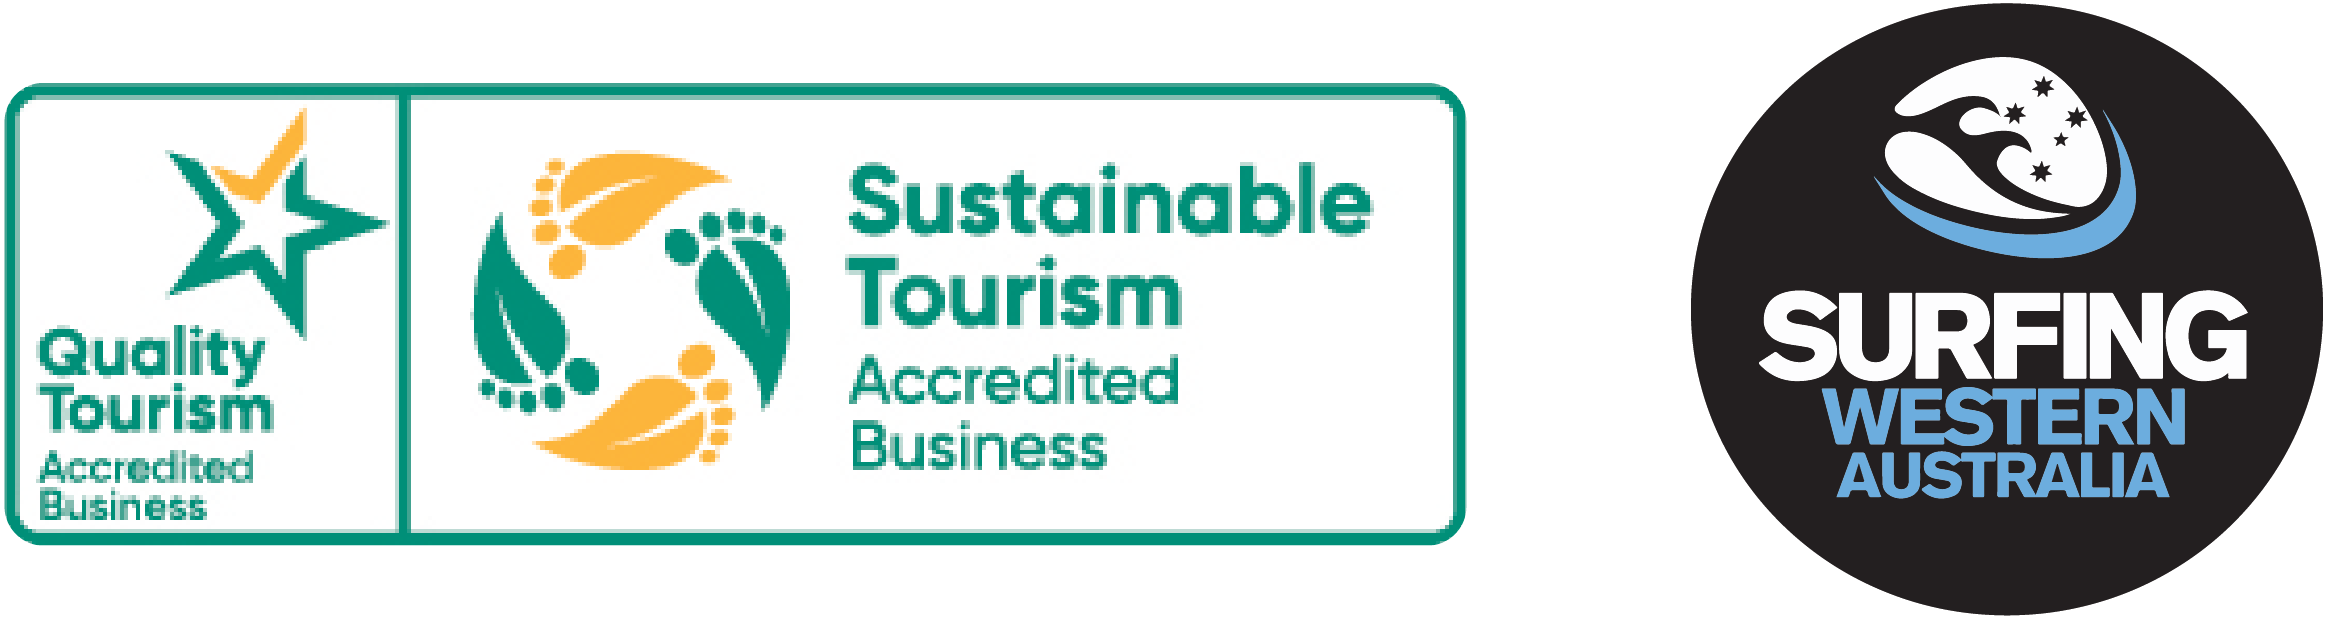 Sustainable Tourism and Surfing WA Accredited Business